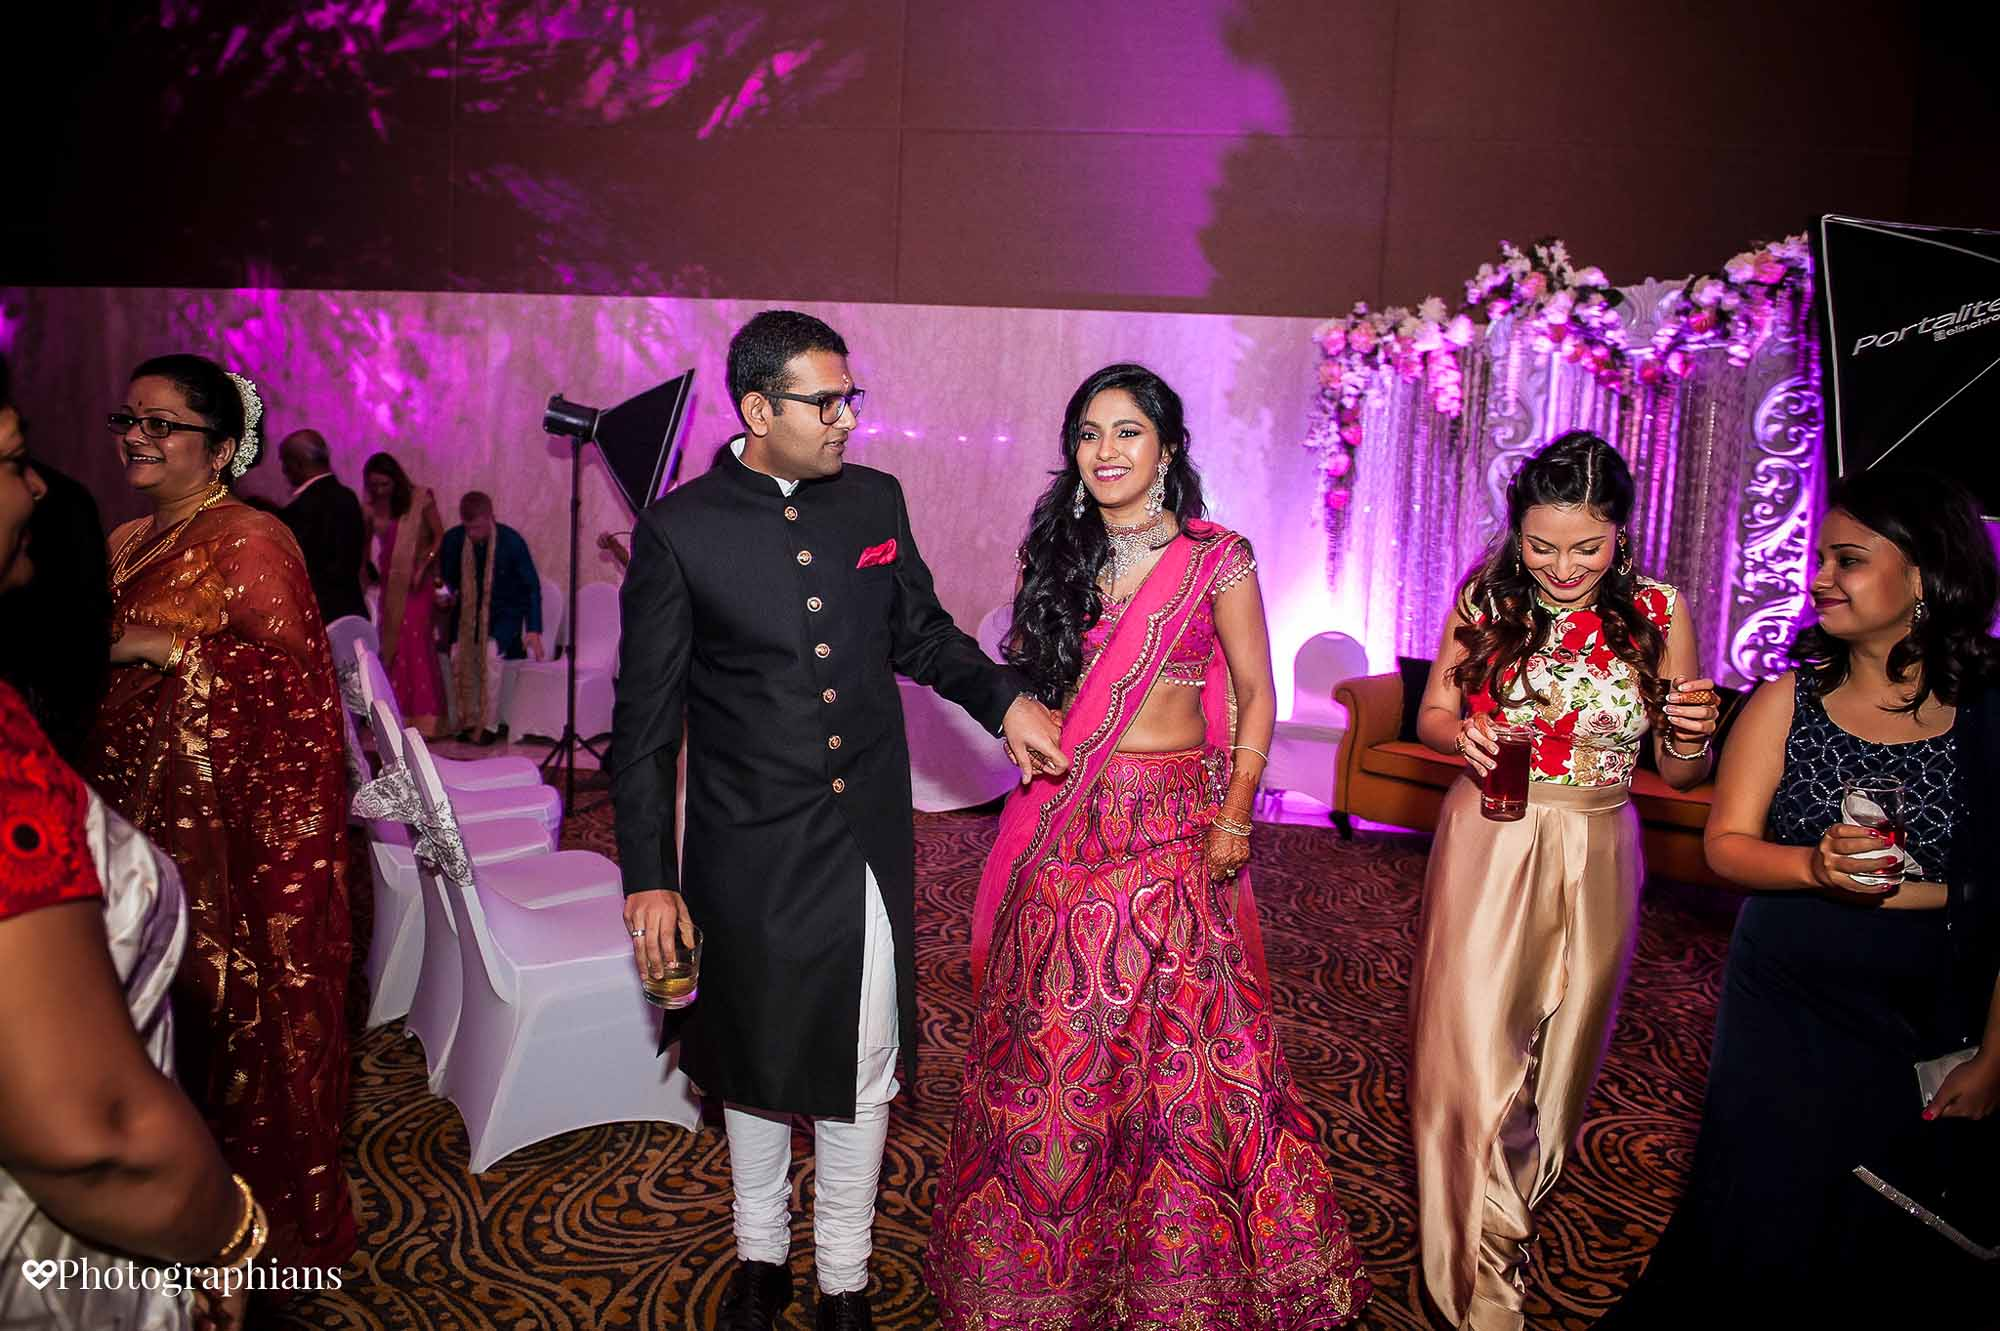 Punjabi_Marwari_Wedding_Kolkata_Photographians_-VIDHI-16